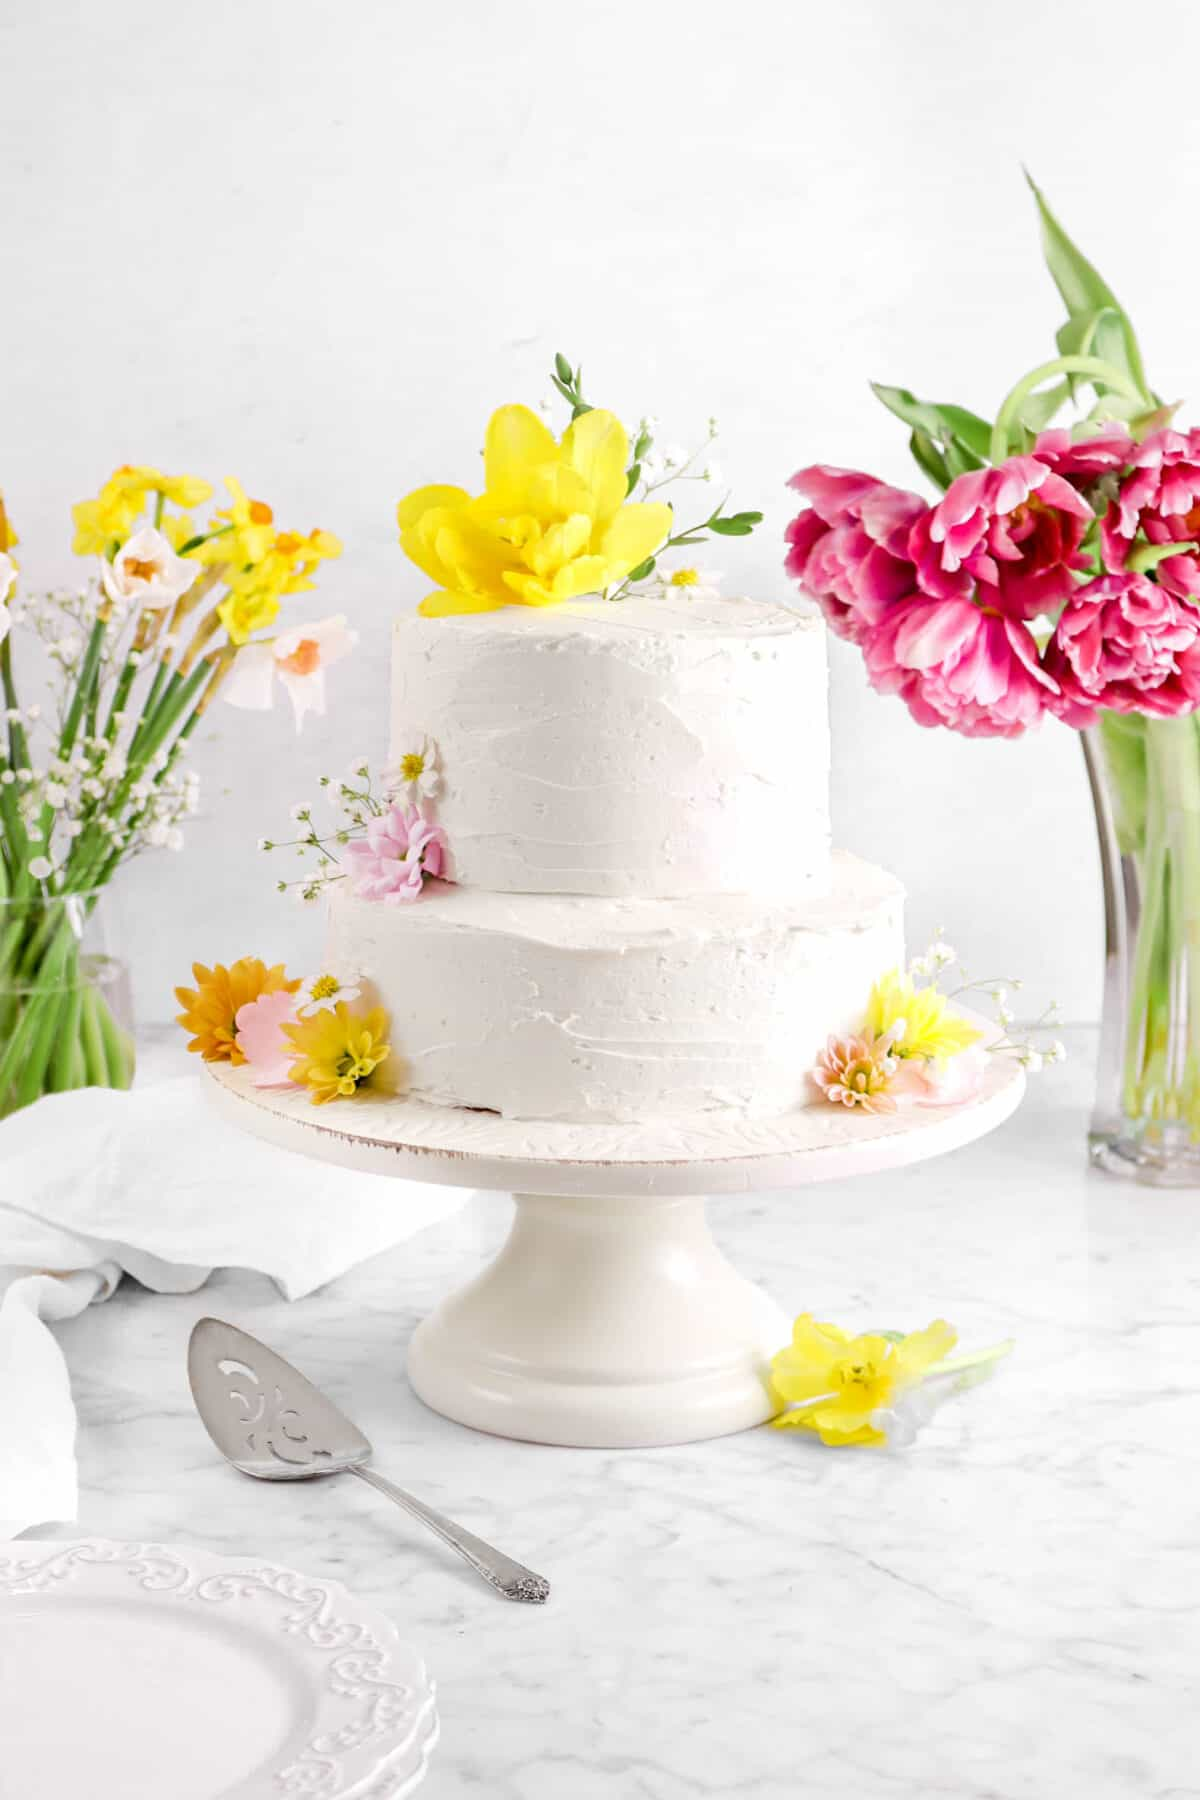 two tier almond layer cake on cake stand with flowers, a cake knife, plates, and napkin